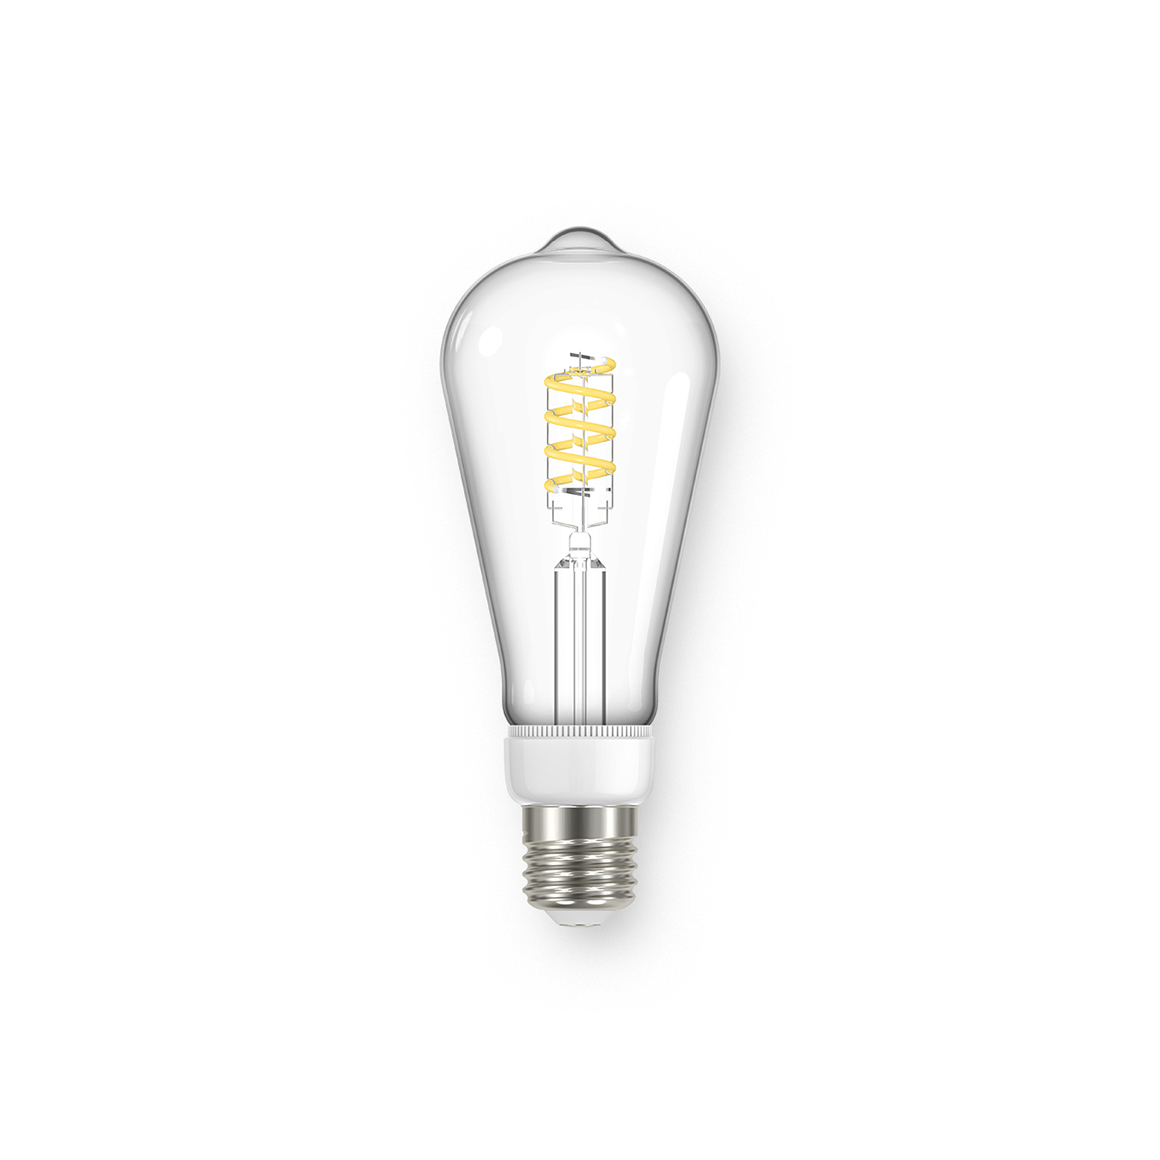 Filament ST64 Spiral Clear 470lm Dimmable E27